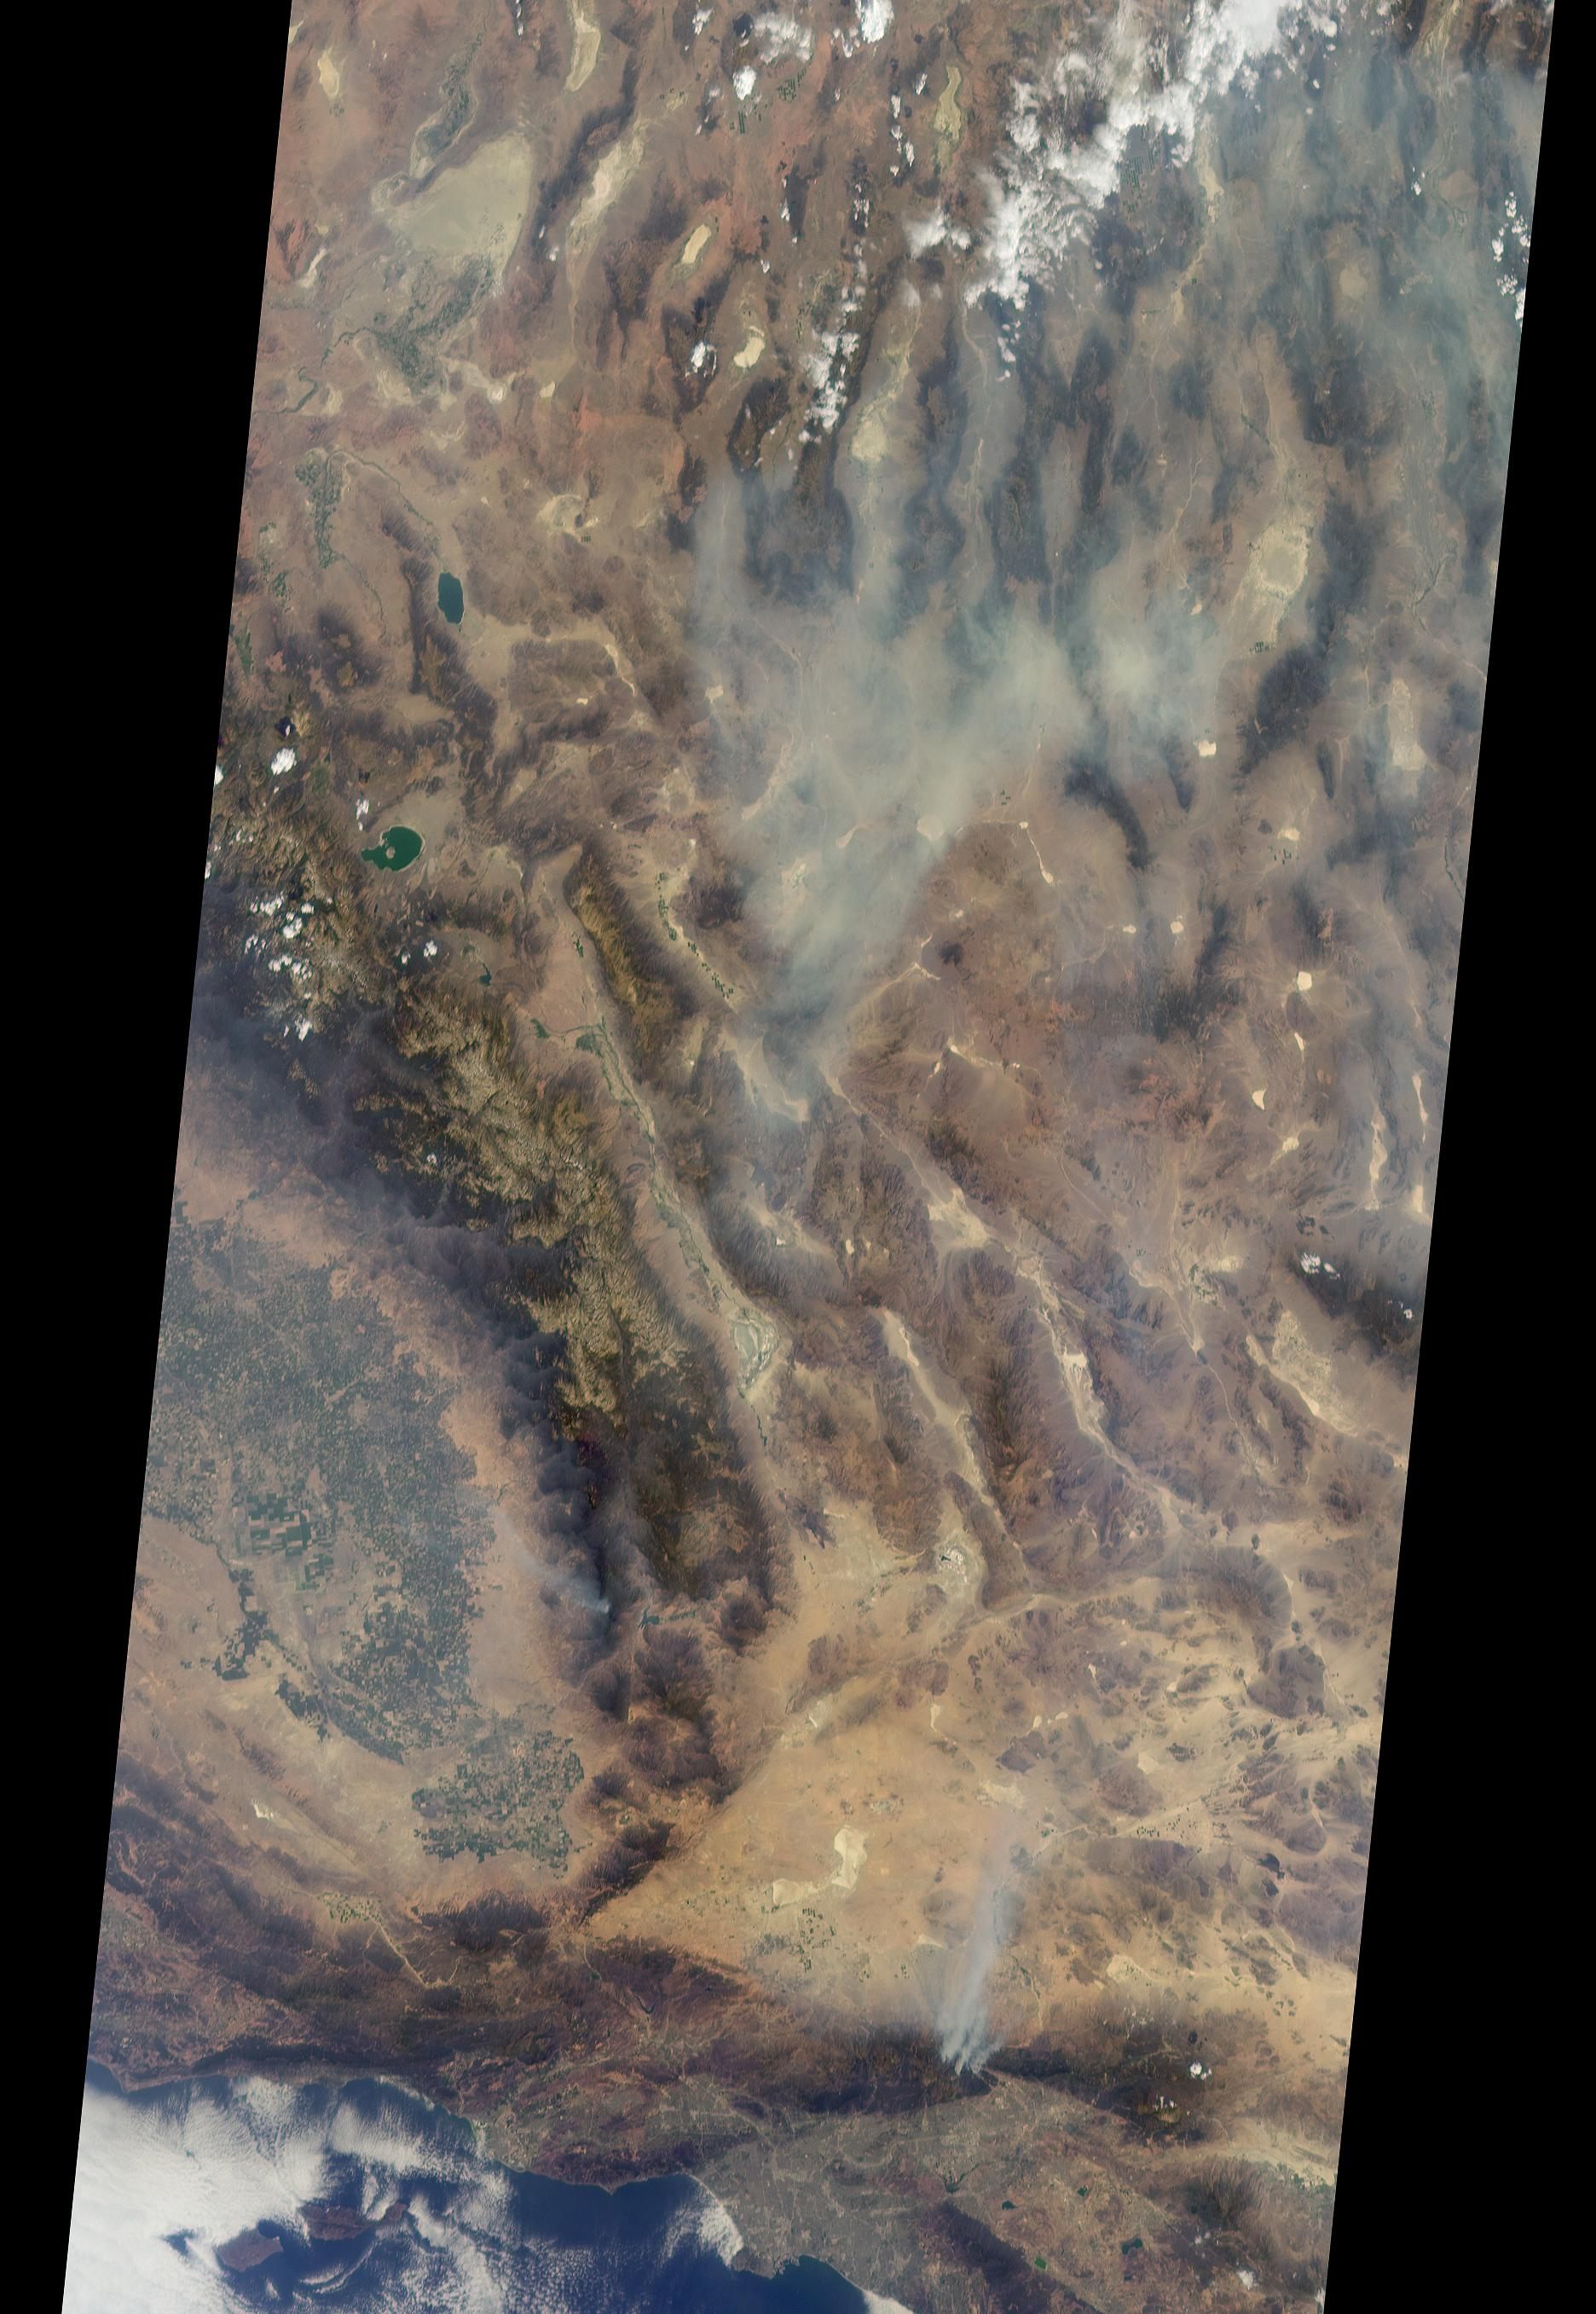 Natural-color satellite image of the Blue Cut wildfire in Southern California midday on Aug. 17, 2016. Los Angeles is pictured by the coast, with three smoke plumes rising in the north.